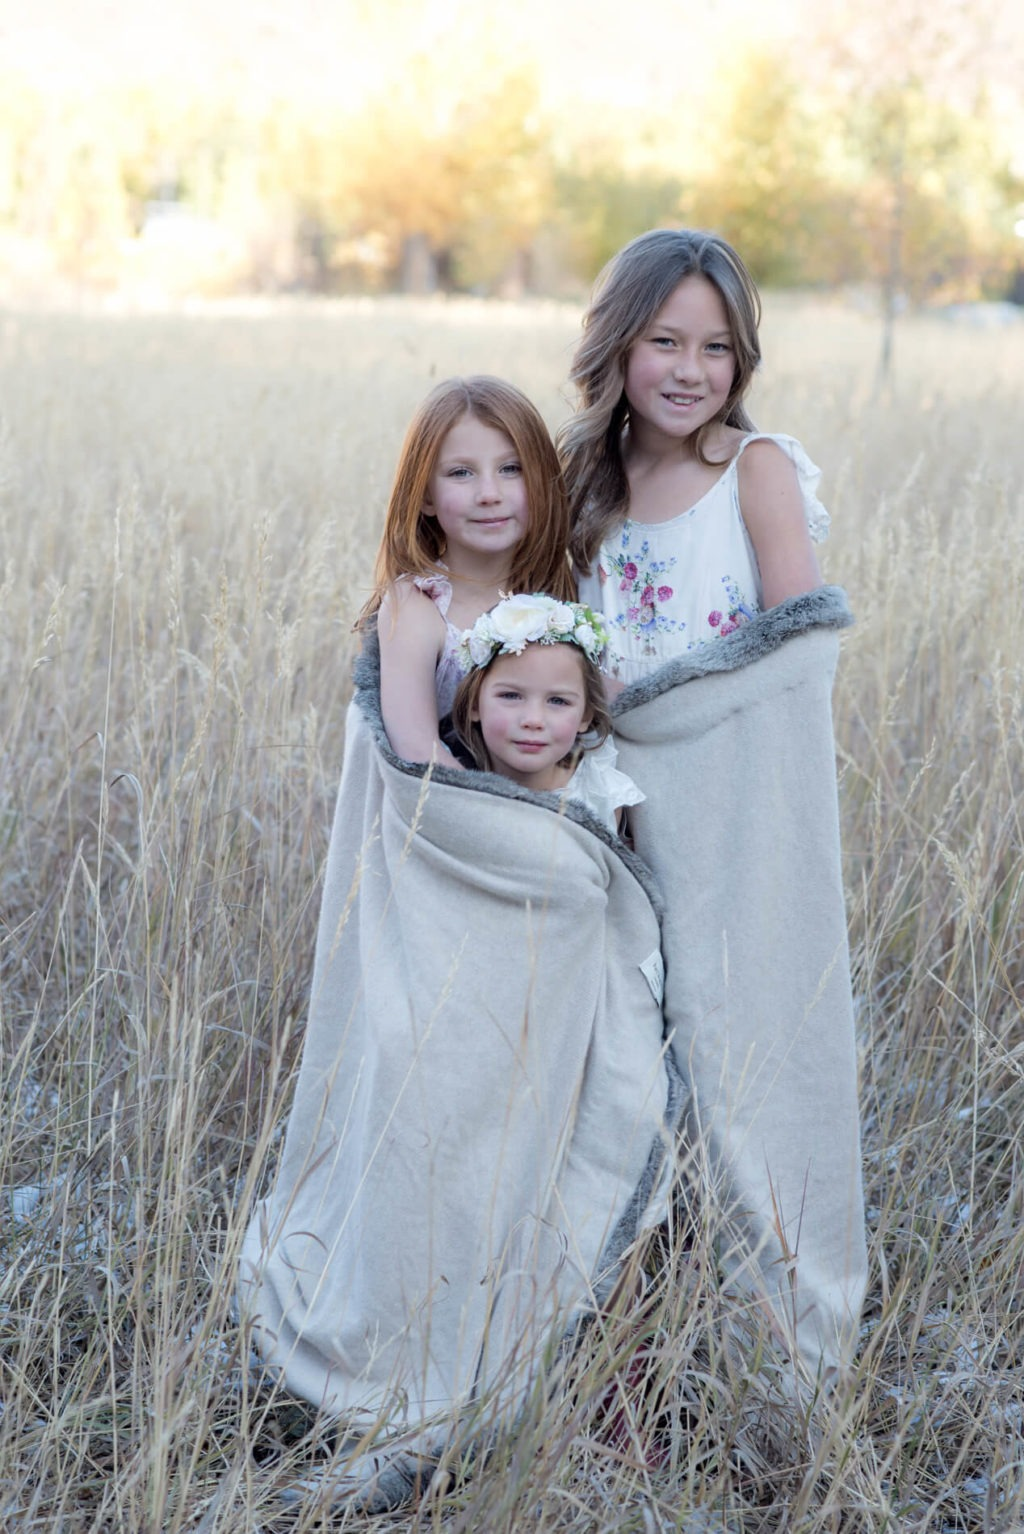 3 sisters wrapped tightly in a blanket